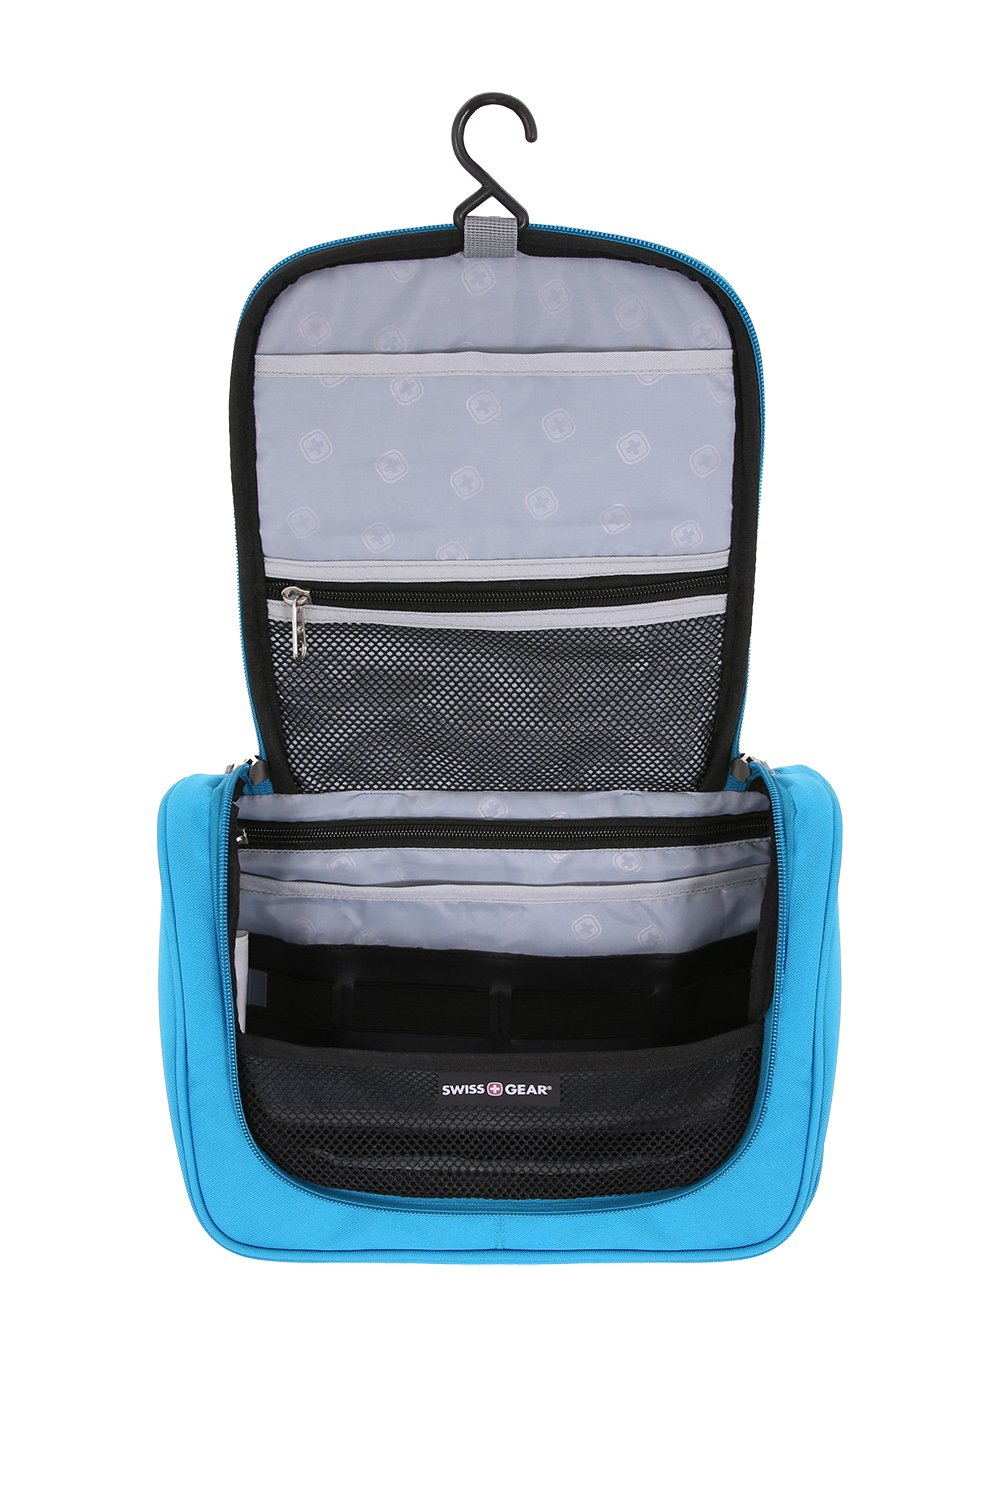 A hanging toiletry kit is a great gift for college students.